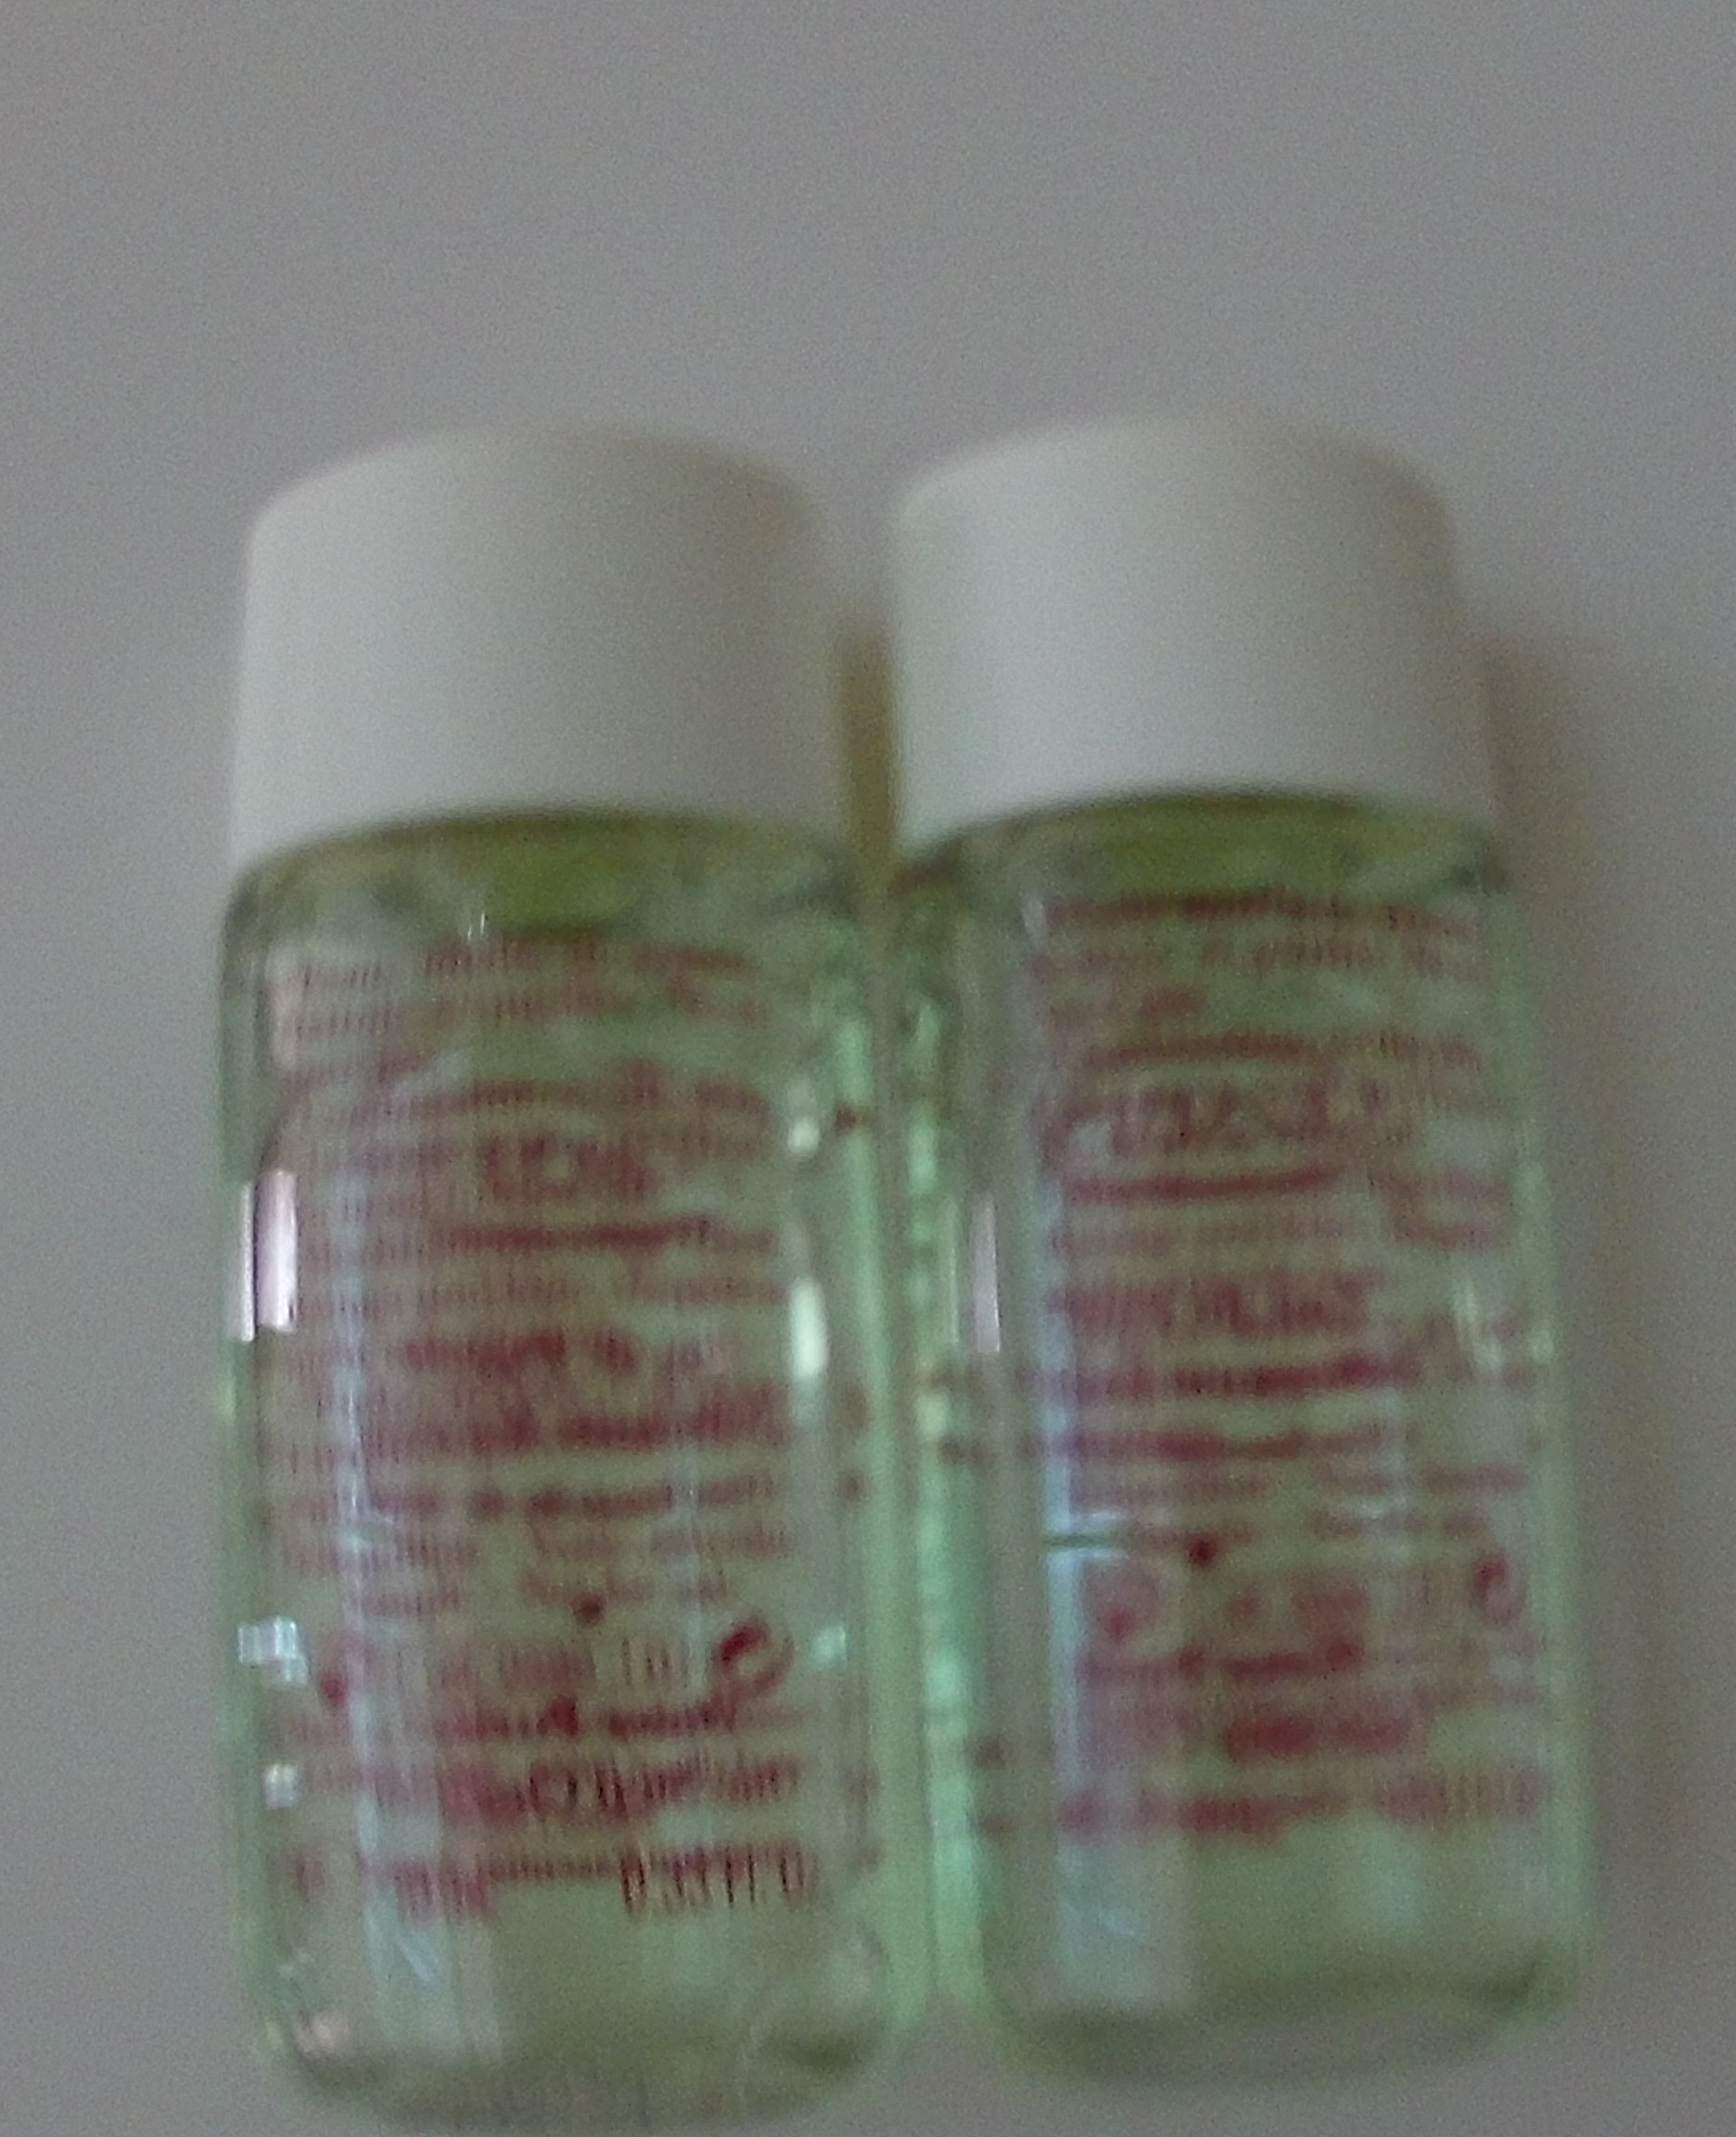 Water Purify One-Step Cleanser with Mint Essential Water by Clarins #4